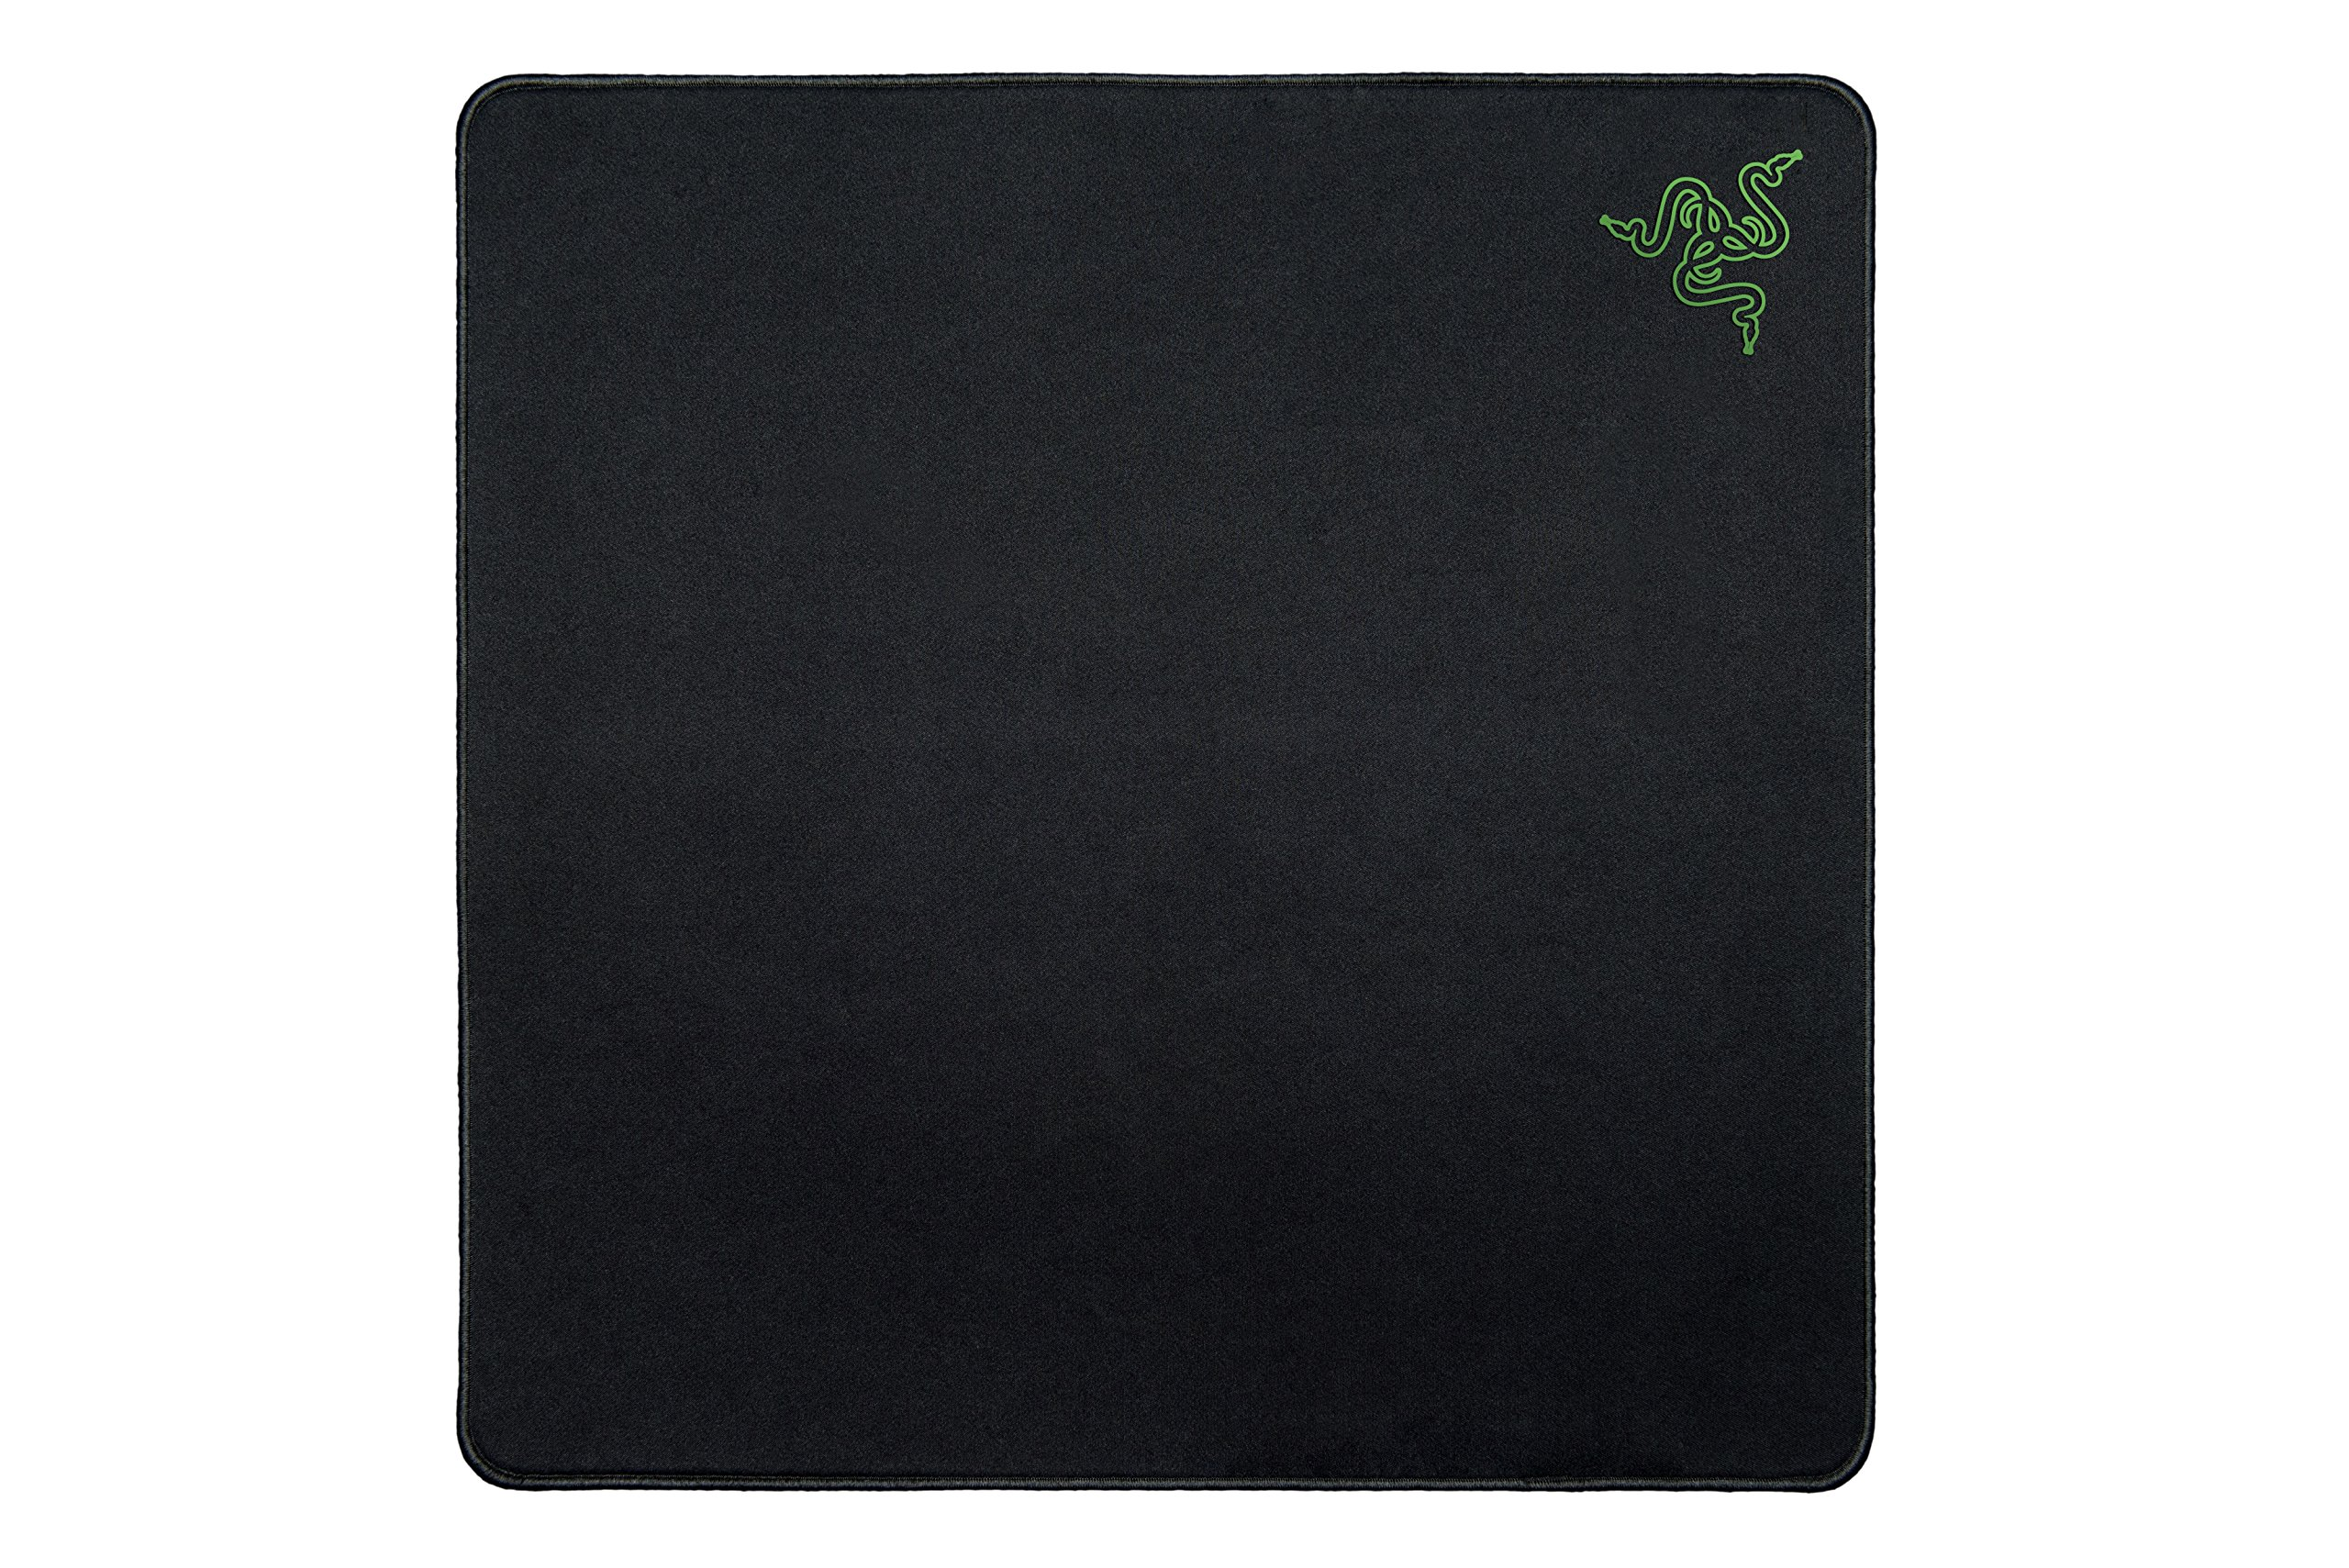 Razer Gigantus: Ultra Large Size - Optimized Gaming Surface - 5 mm Thick Rubberized Base - Cloth Esports Gaming Mouse Mat by Razer